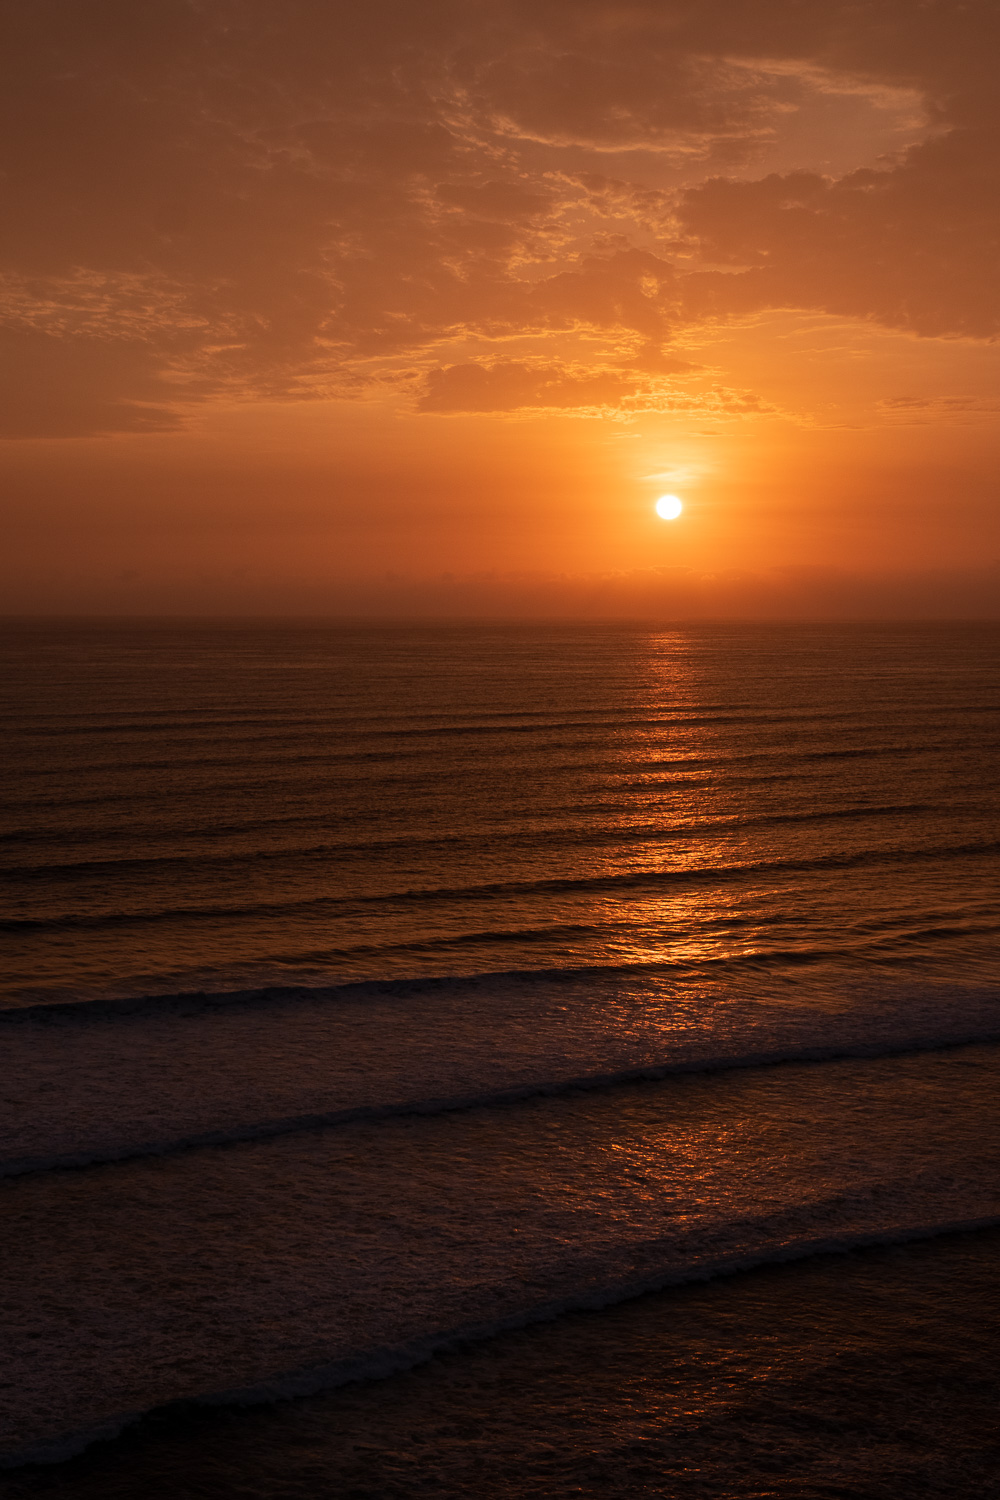 """Sunset over the Pacific Ocean in Lima, Peru. Travel photography and guide by © Natasha Lequepeys for """"And Then I Met Yoko"""". #photoblog #travelblog #travelperu"""